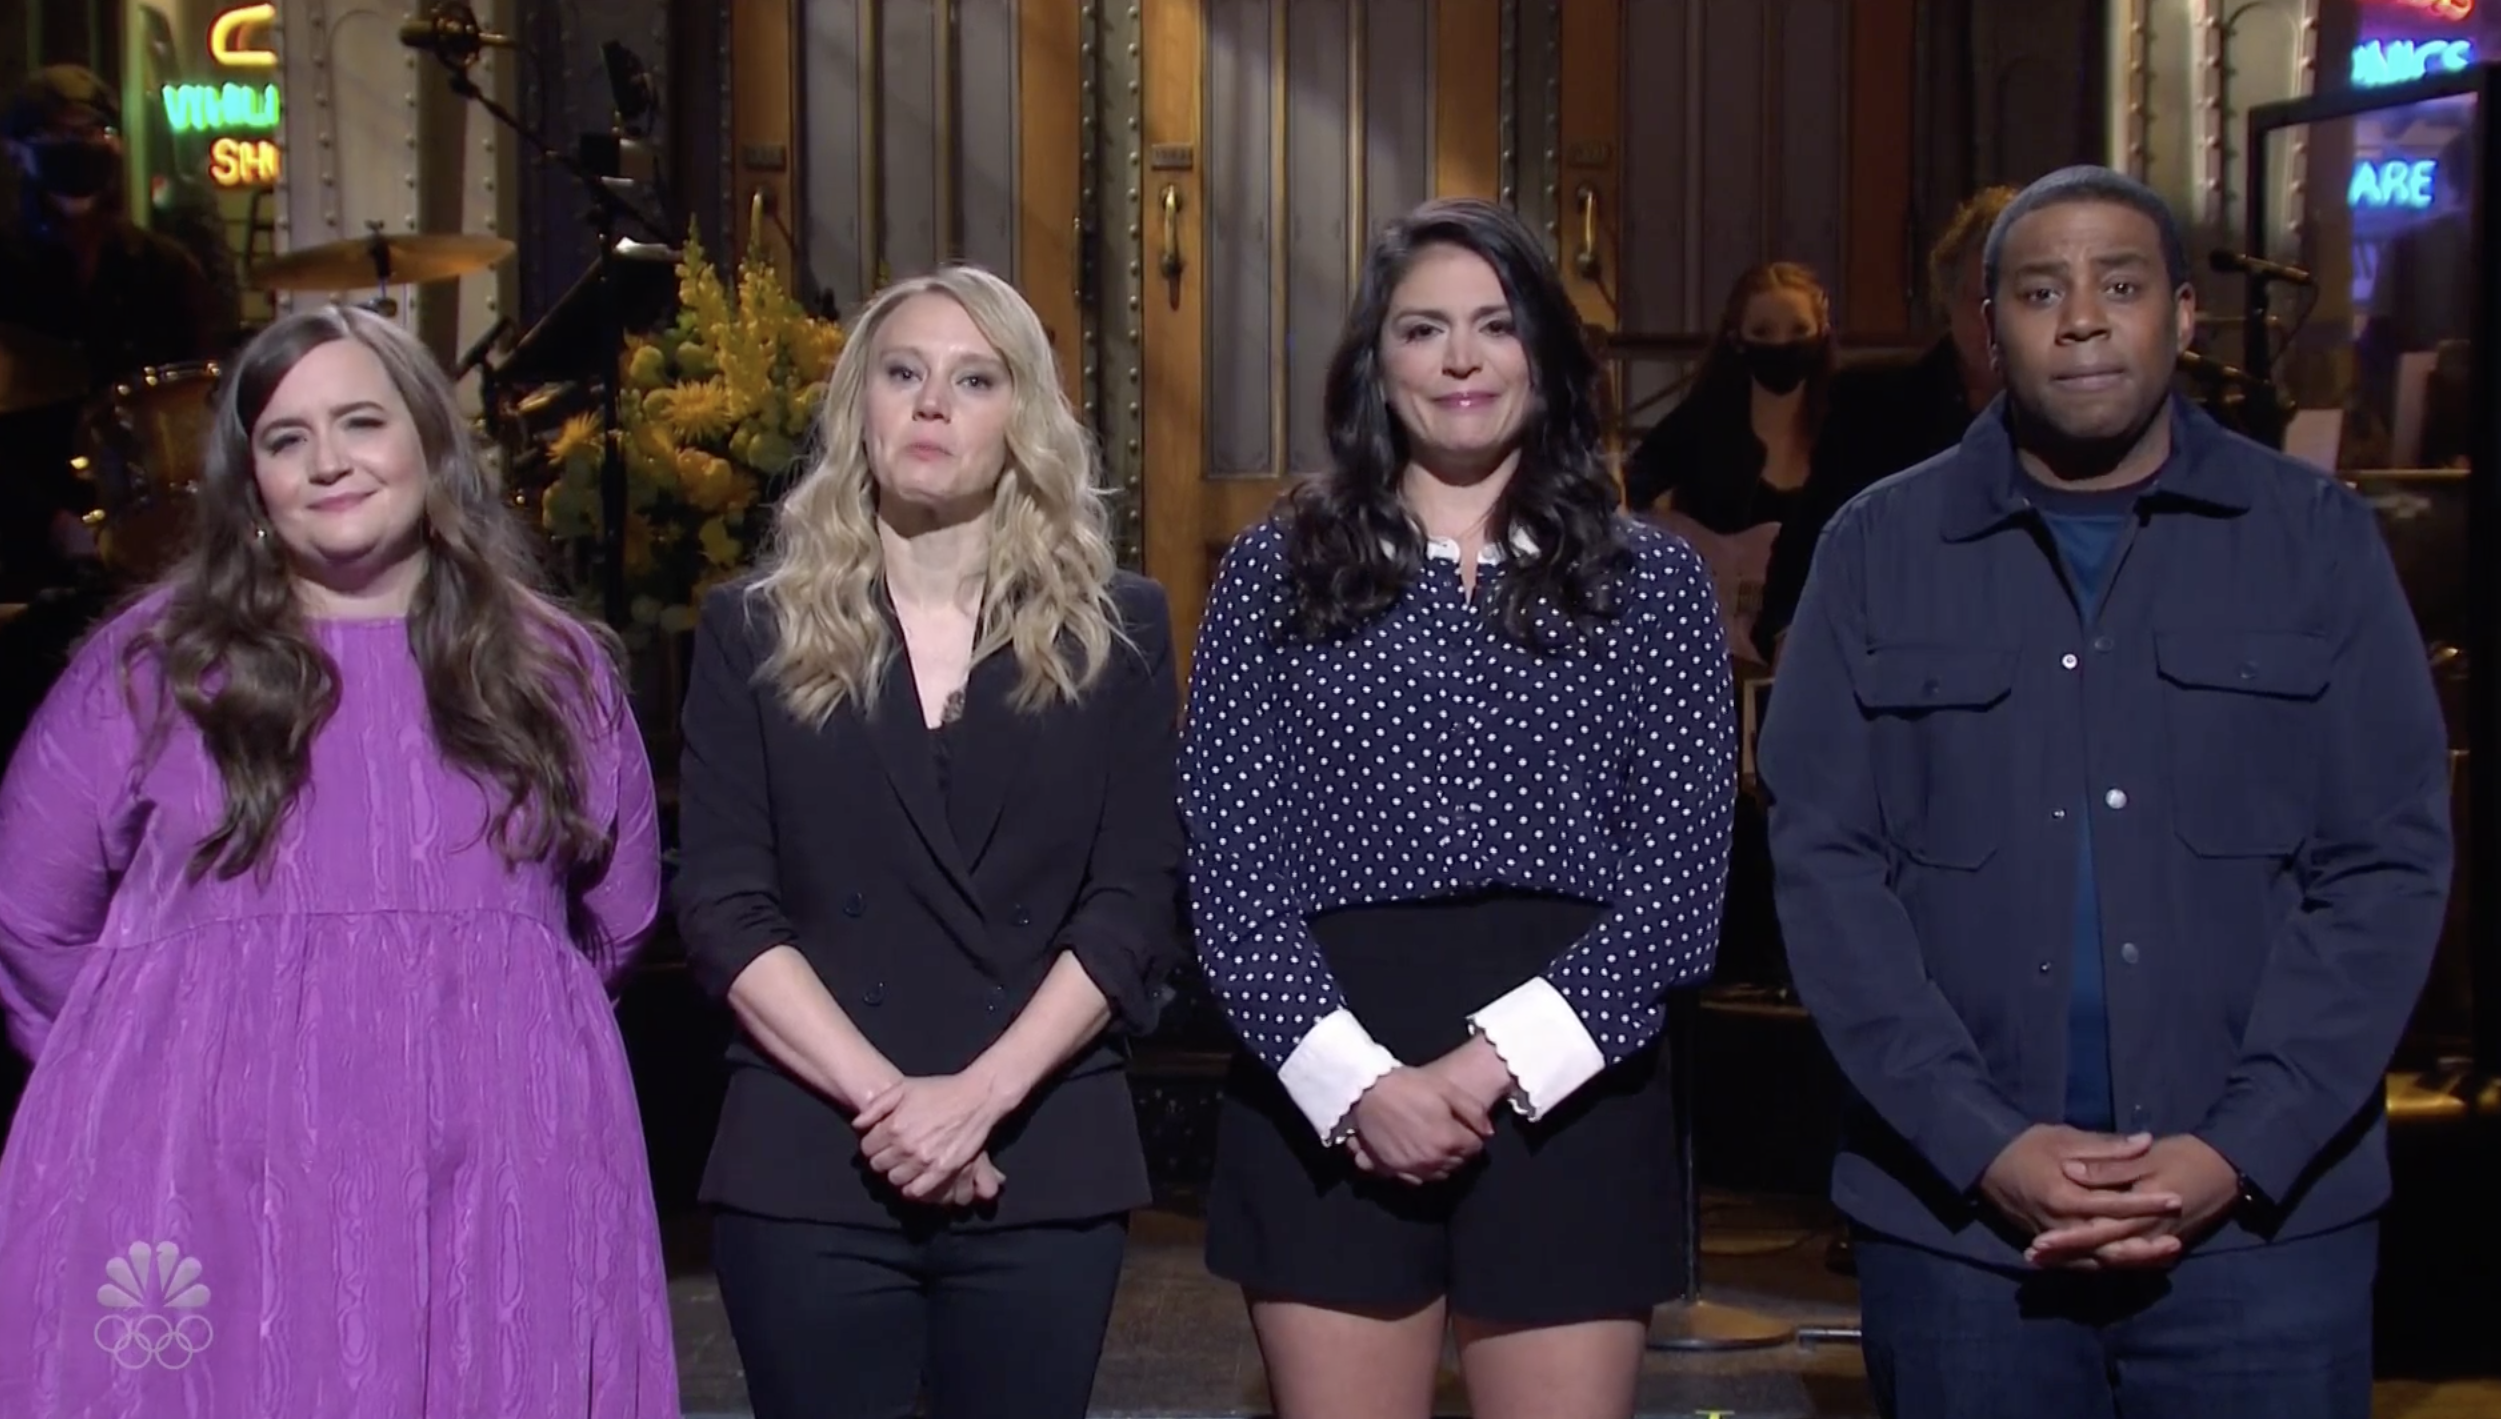 Aidy Bryant, Kate McKinnon, Cecily Strong, and Kenan Thompson on 'SNL'